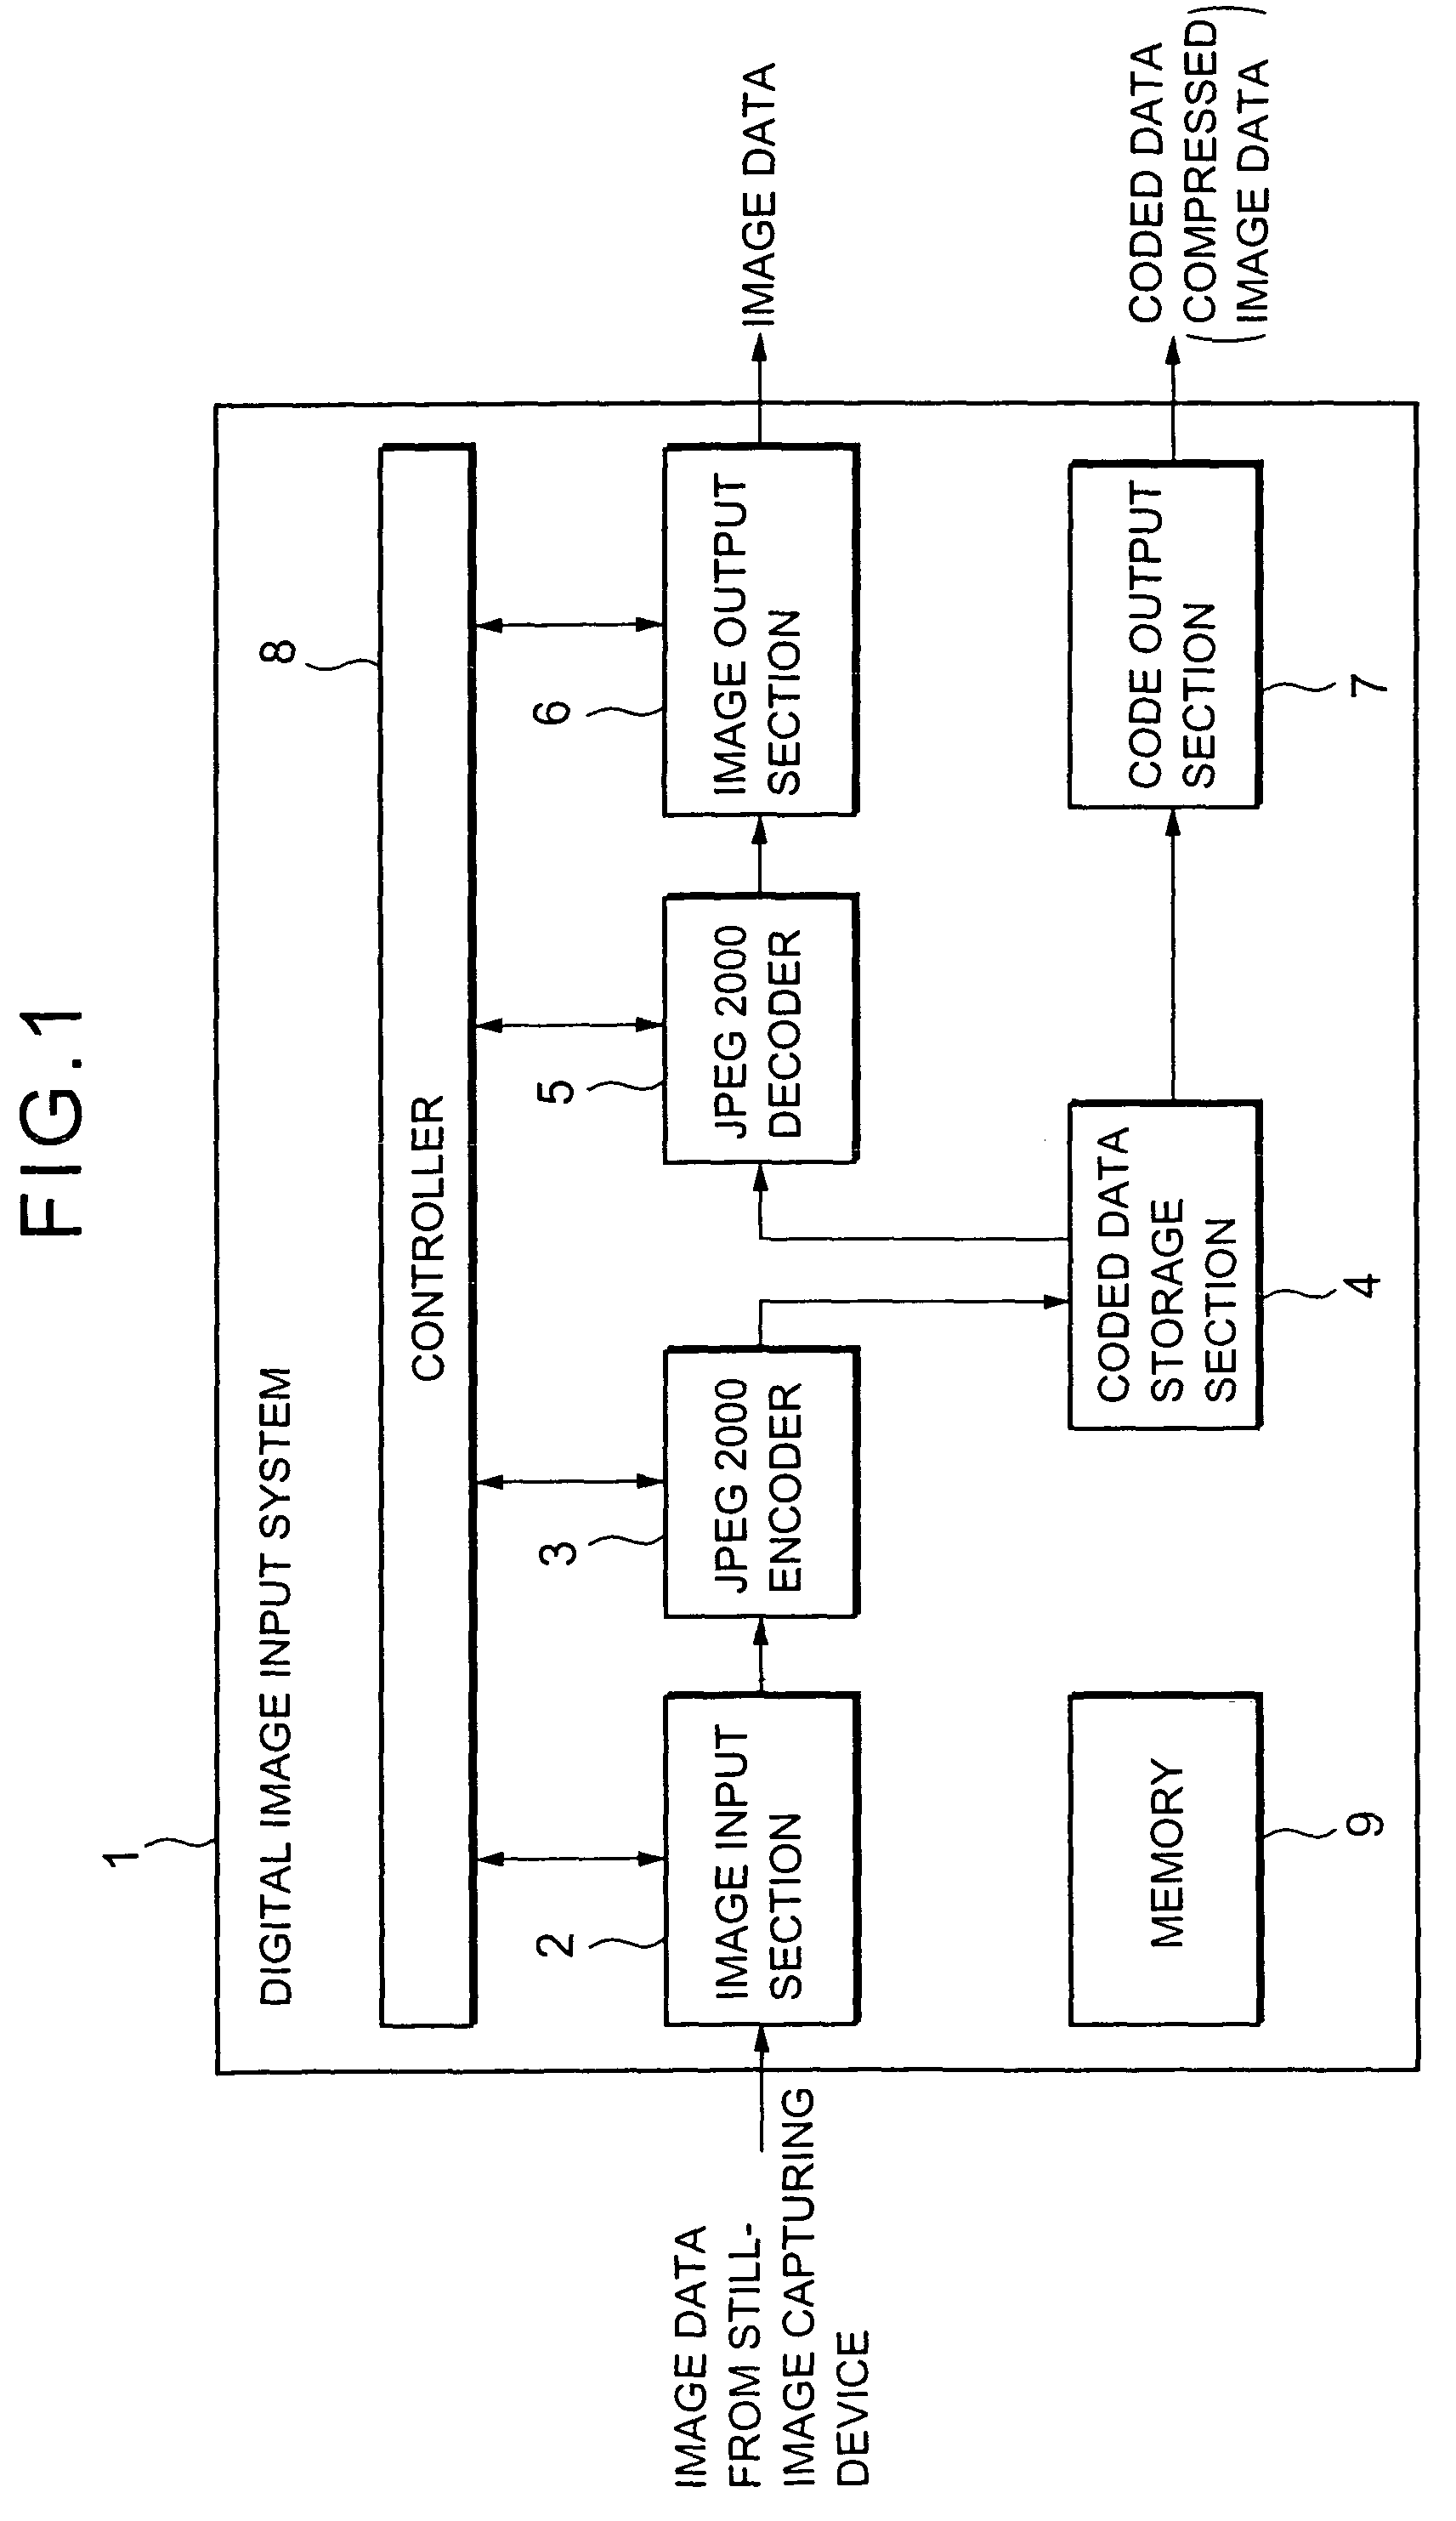 Patent Us7551788 Digital Image Coding Device And Method For Noise Block Diagram Jpeg Compression Drawing